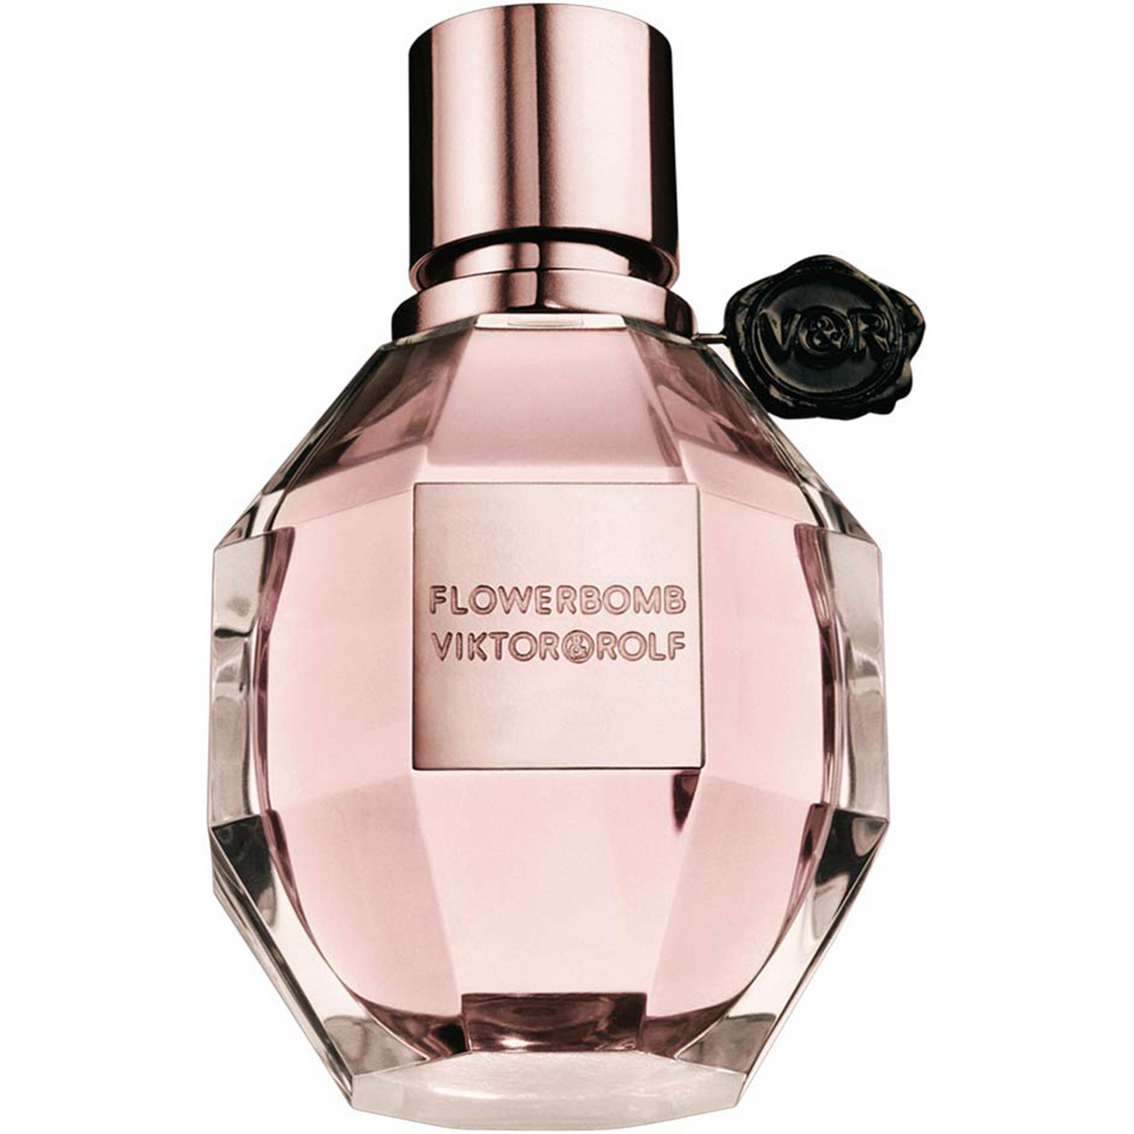 Viktor & Rolf Flowerbomb Eau De Parfum Spray | Women's Fragrances